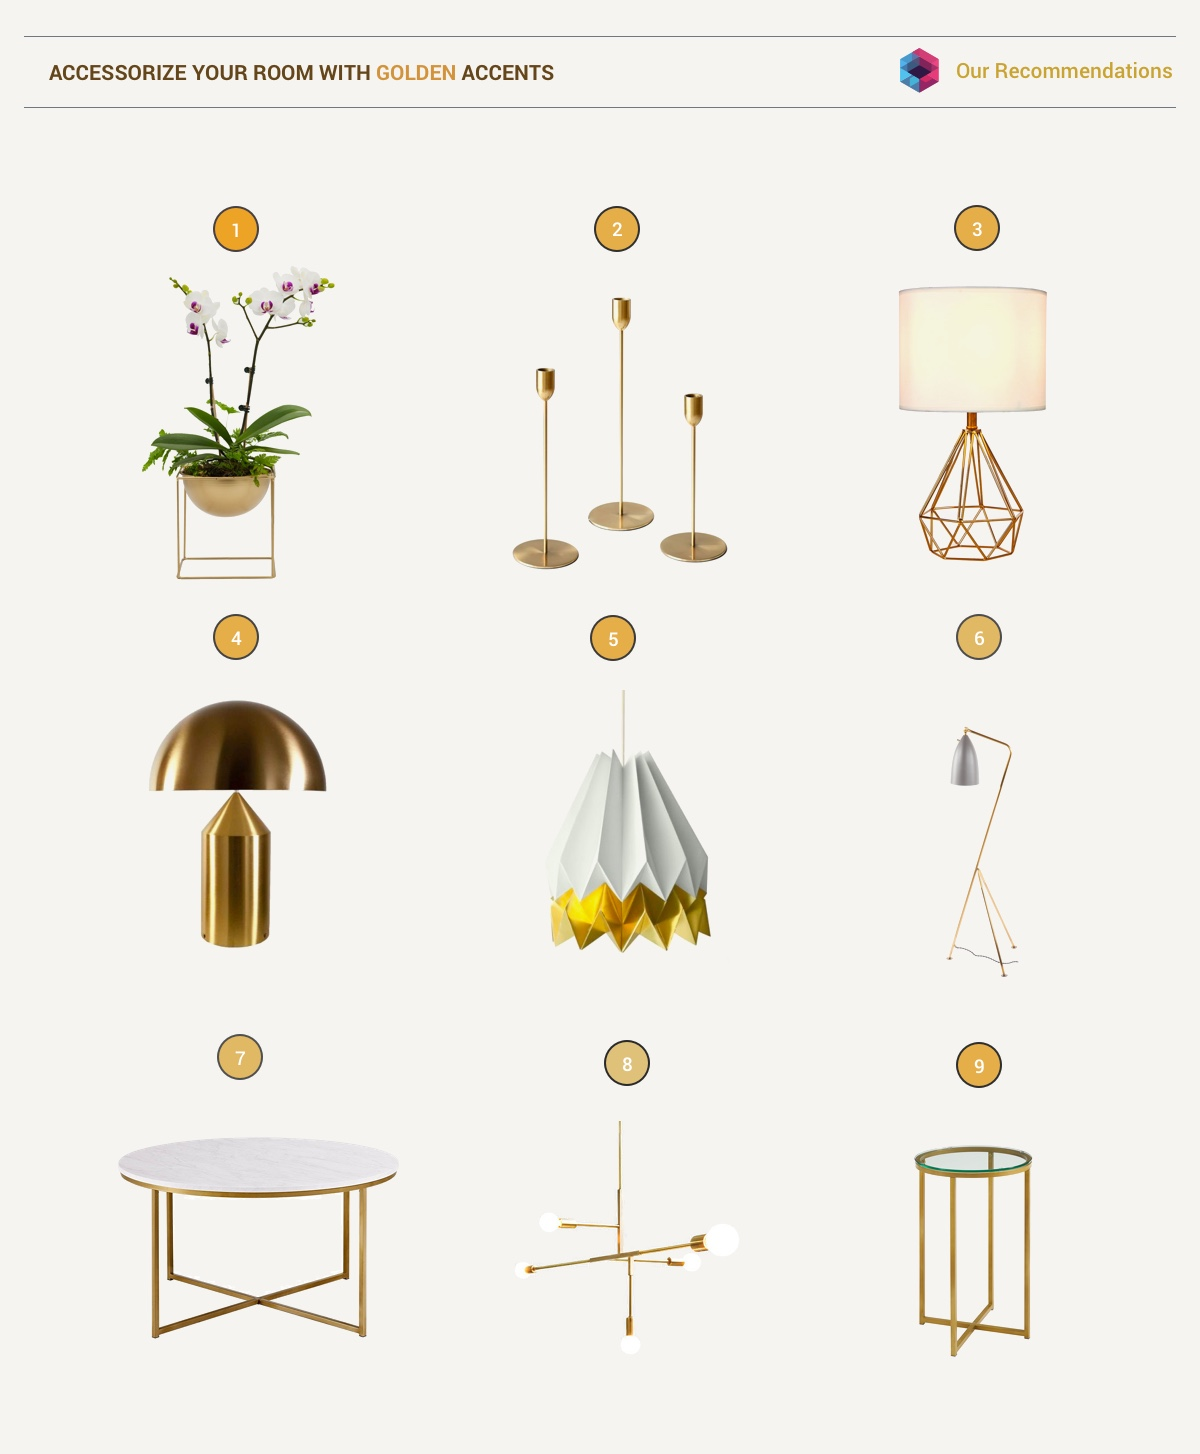 Using Gold Accents In Interior Design images 32